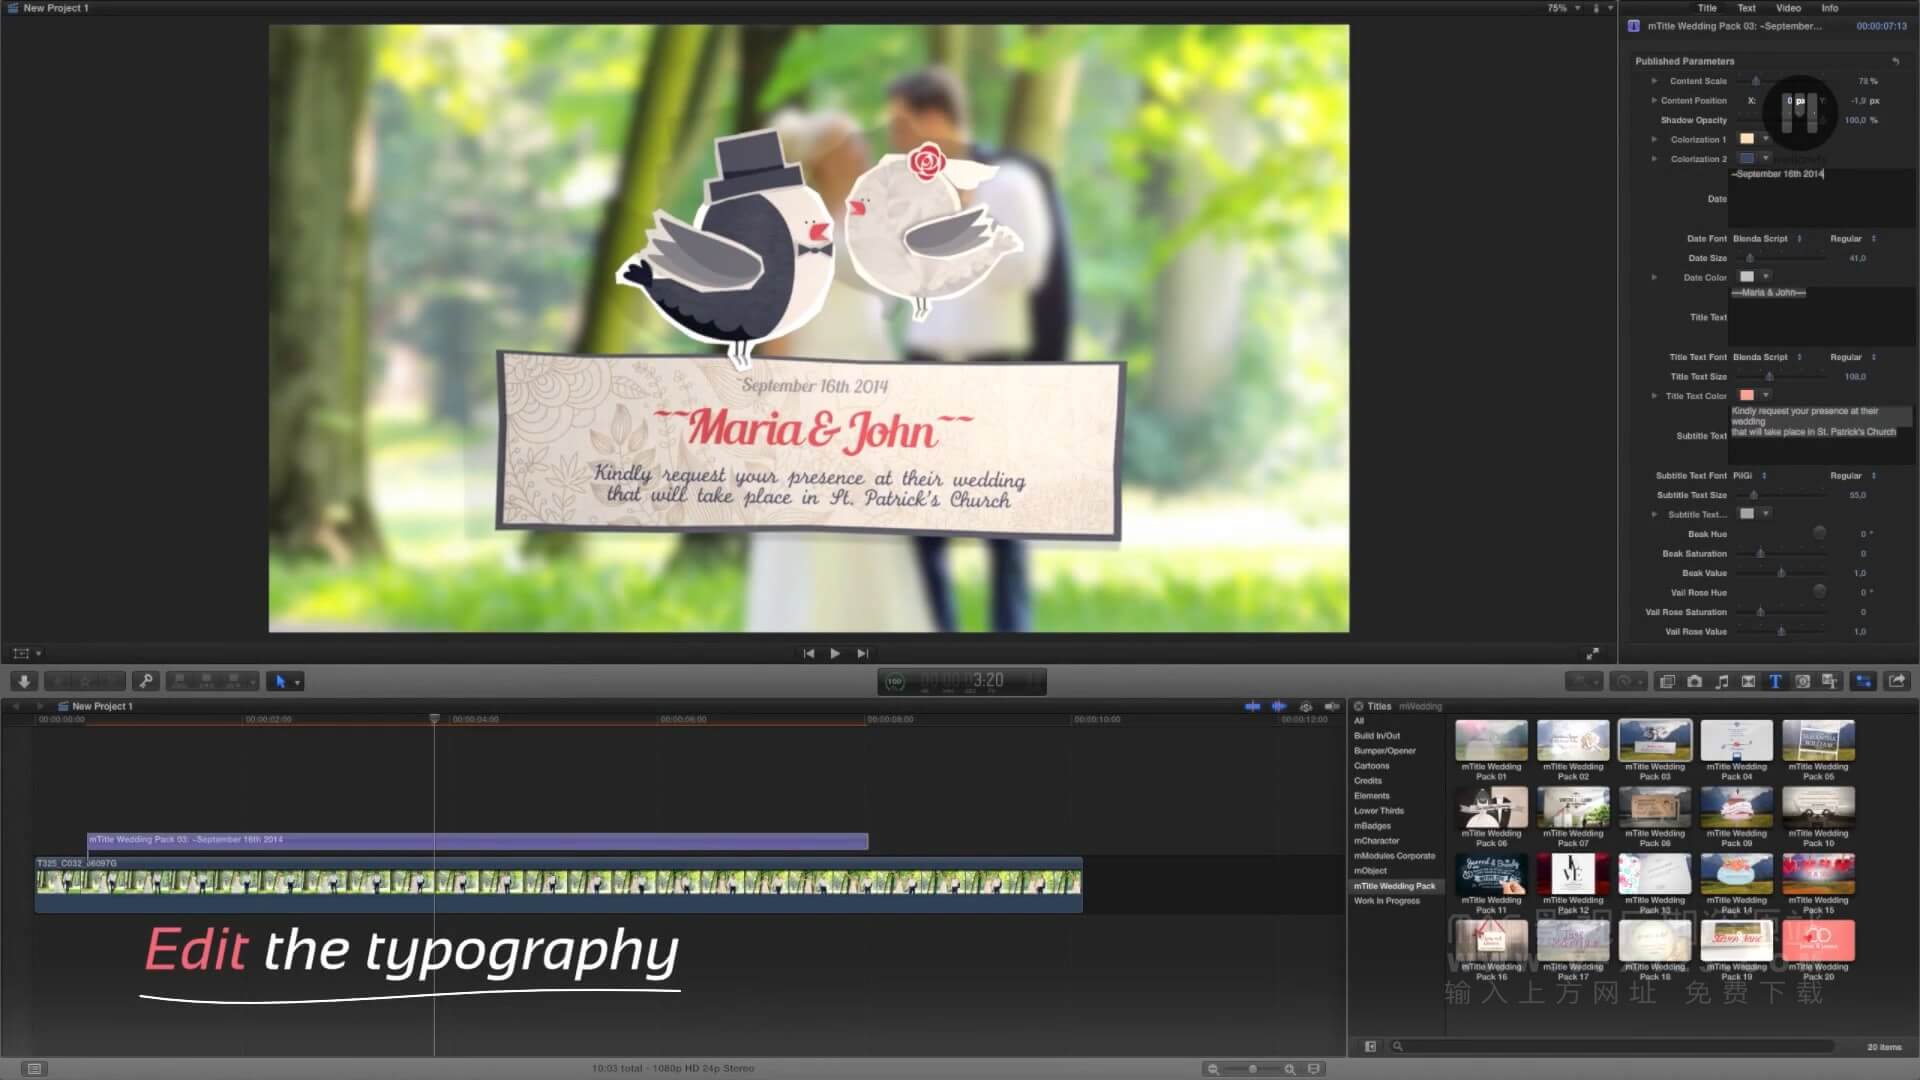 fcpx插件 20个浪漫婚礼标题文字动画模板 mTitle Wedding Pack